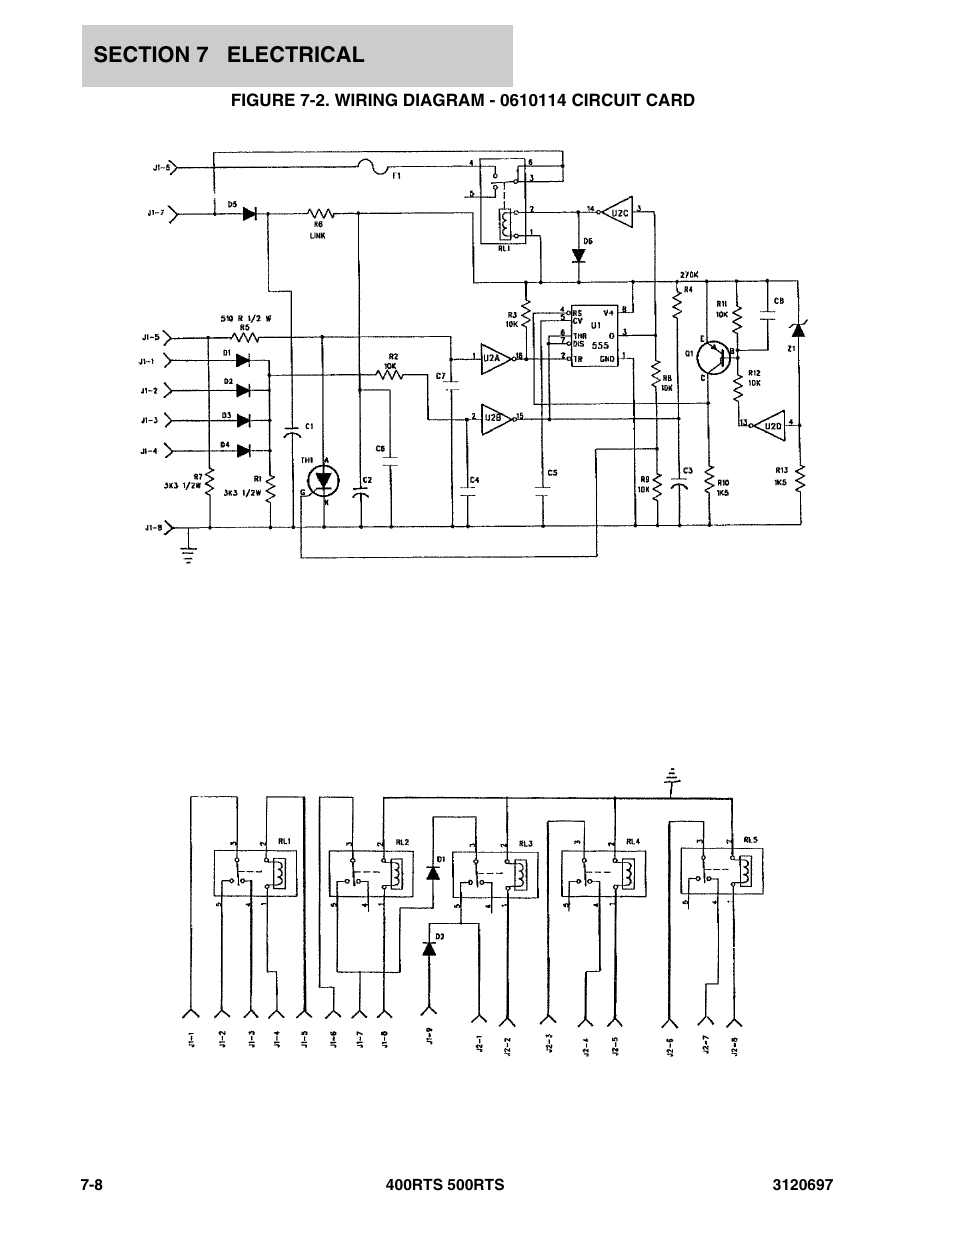 Ansi Wiring Diagram Format And Ebooks Waterscape Property Layout Along With Honda Motorcycle Diagrams Figure 7 2 0610114 Circuit Card Jlg Electrical Symbols Activity